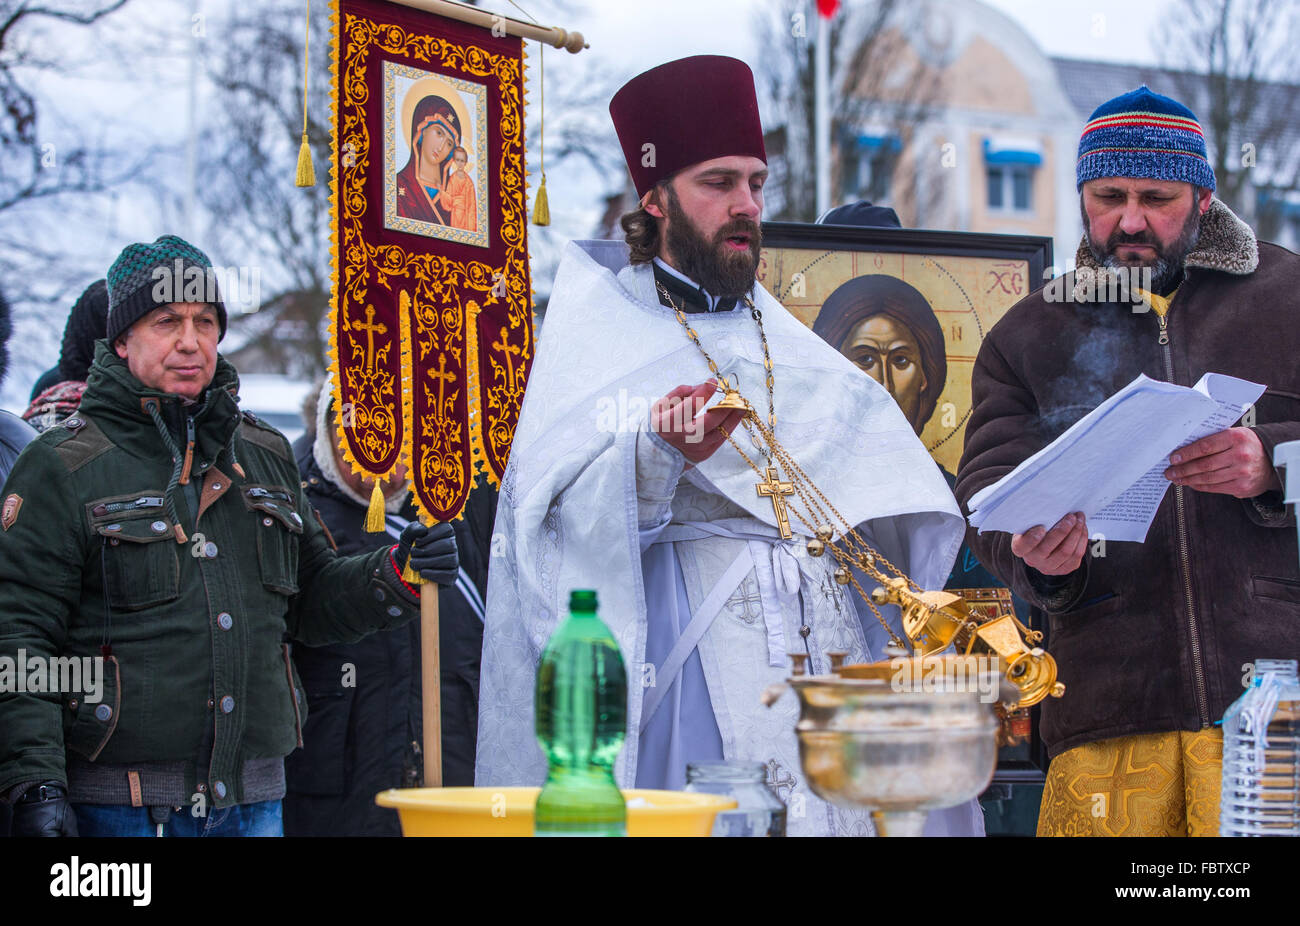 Schwerin, Germany. 19th Jan, 2016. Russian Orthodox Priest Dionisi Idavain (c) blesses members of his community, - Stock Image